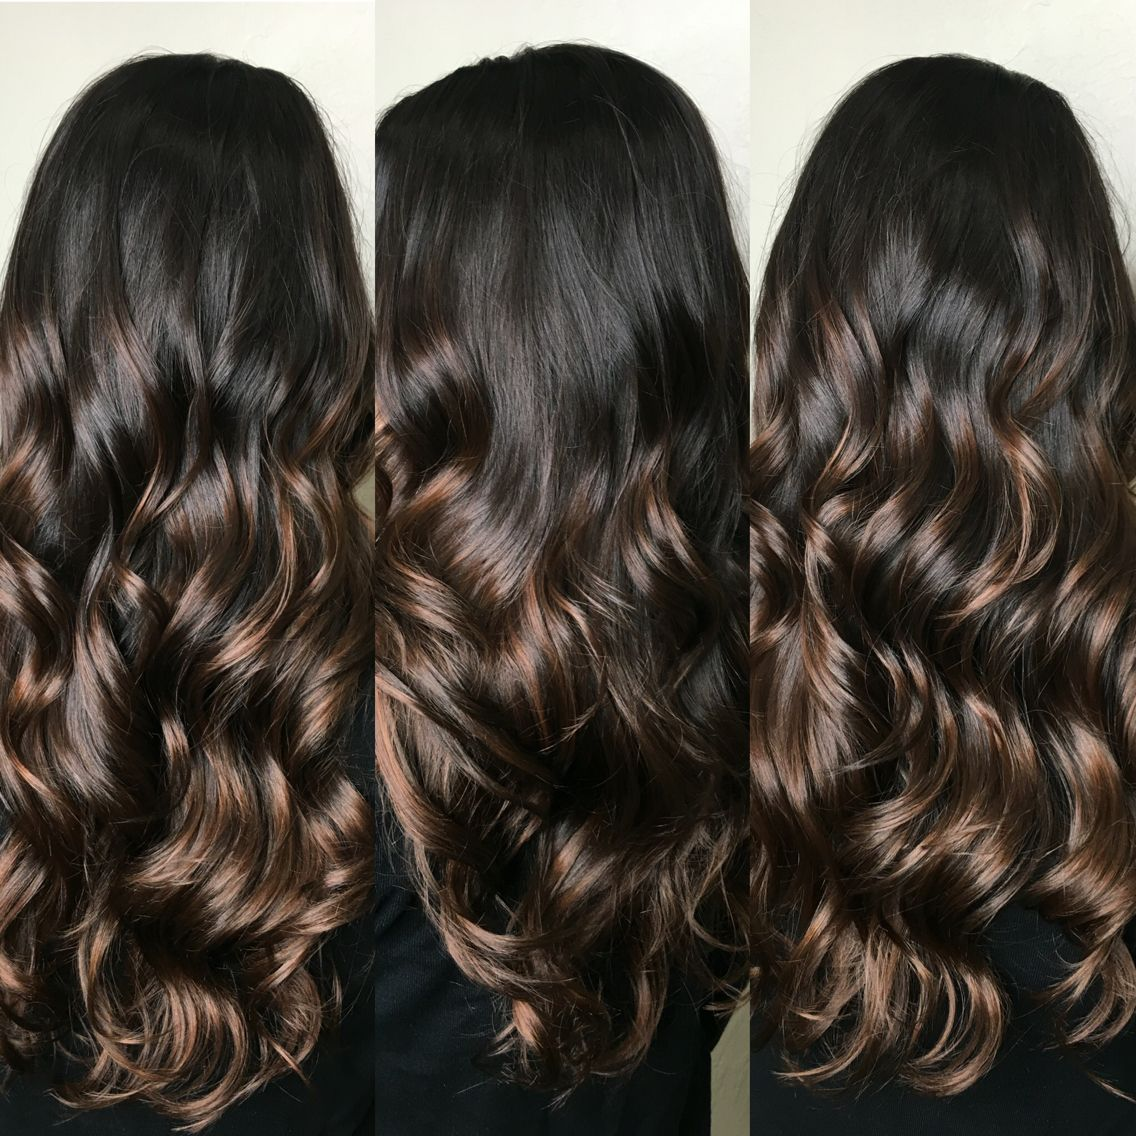 Top 5 Best Long Hairstyles for Women's